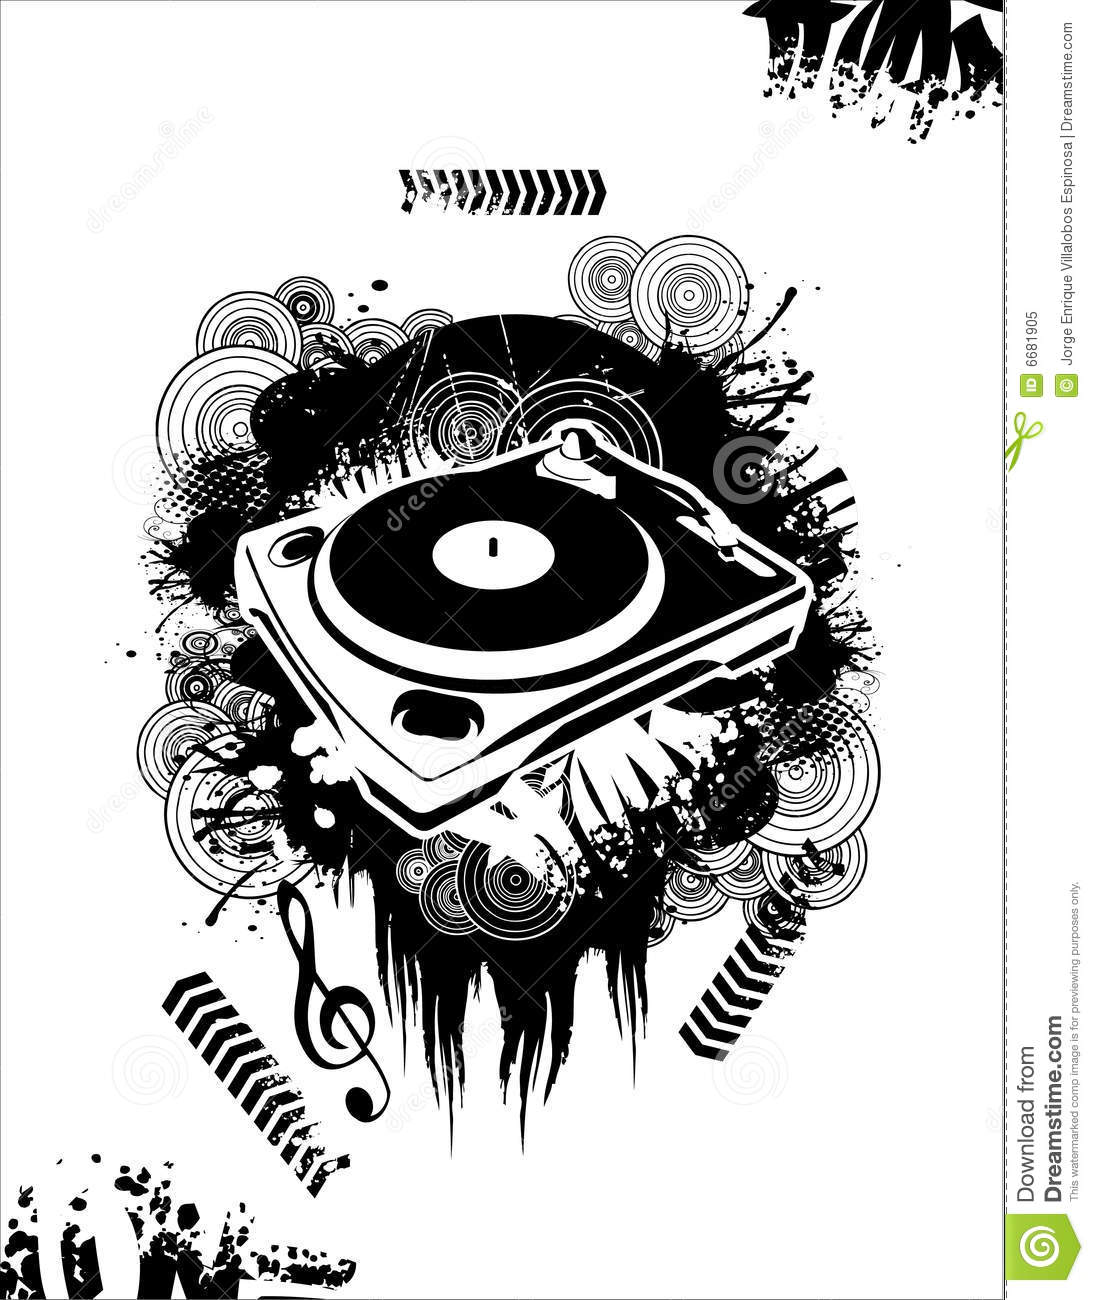 Music Dj Vector Stock Vector Illustration Of Dirty Party